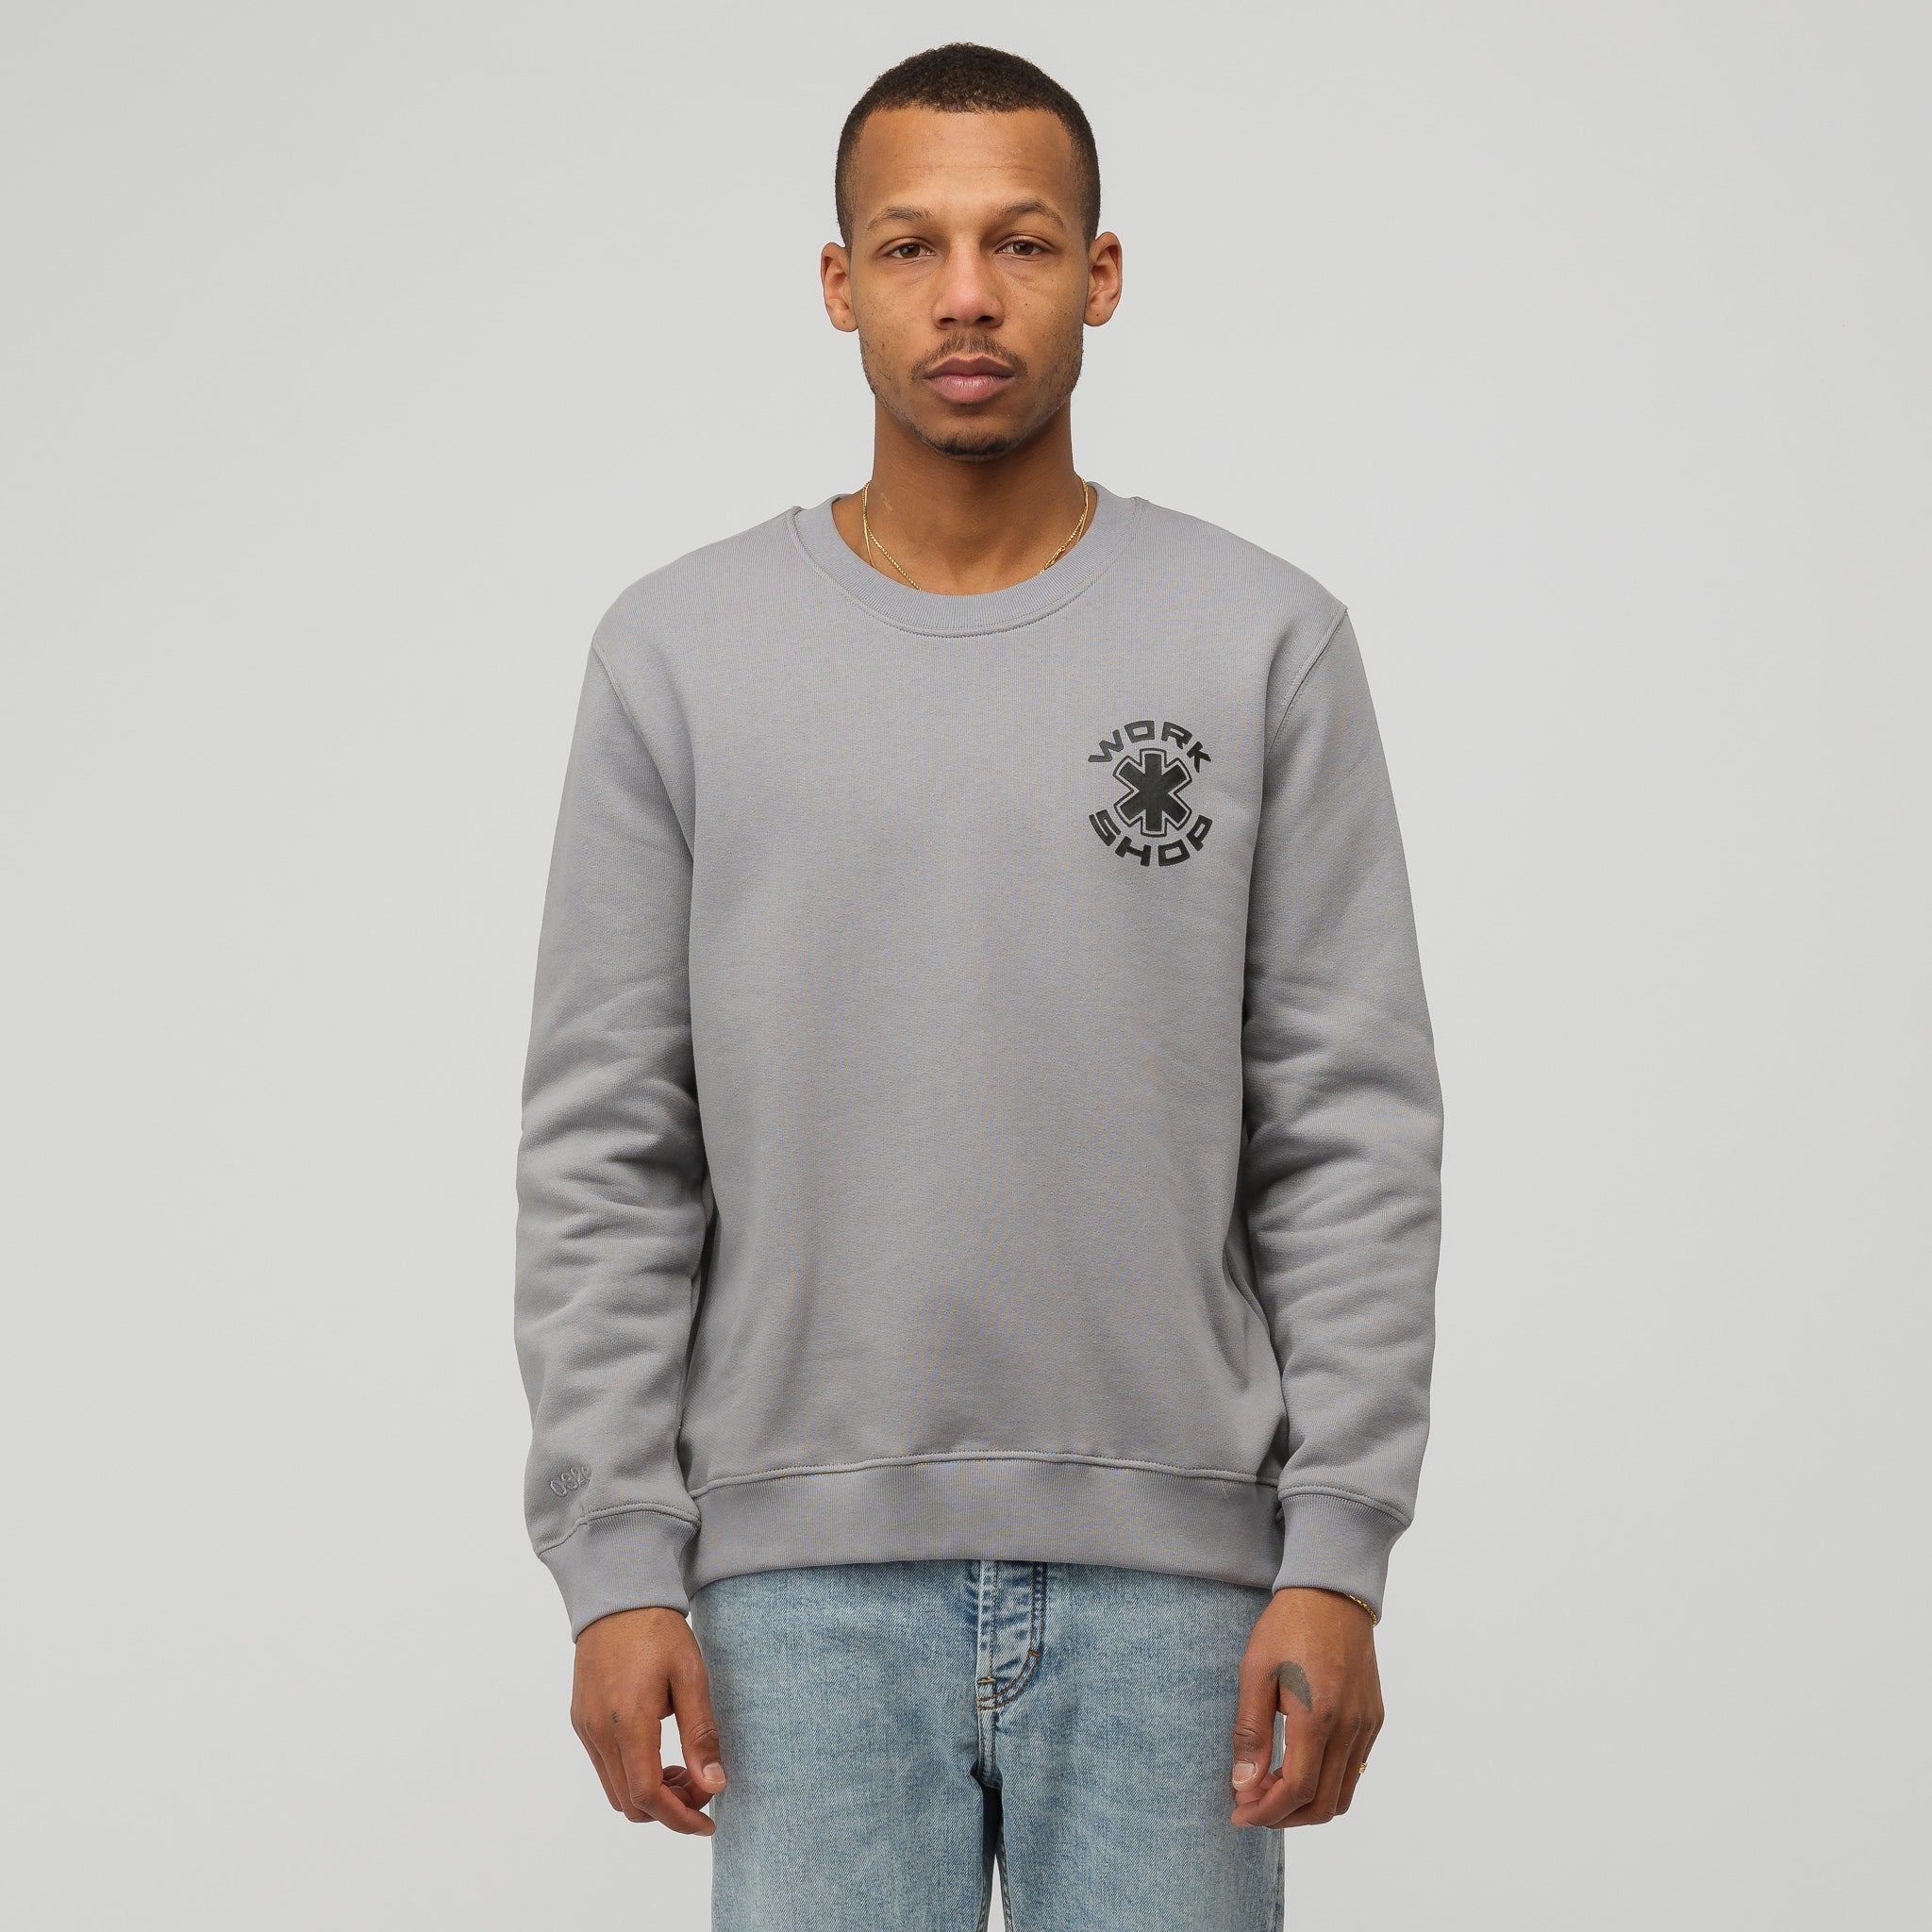 COSMIC WORKSHOP Gear Crewneck Sweatshirt in Grey